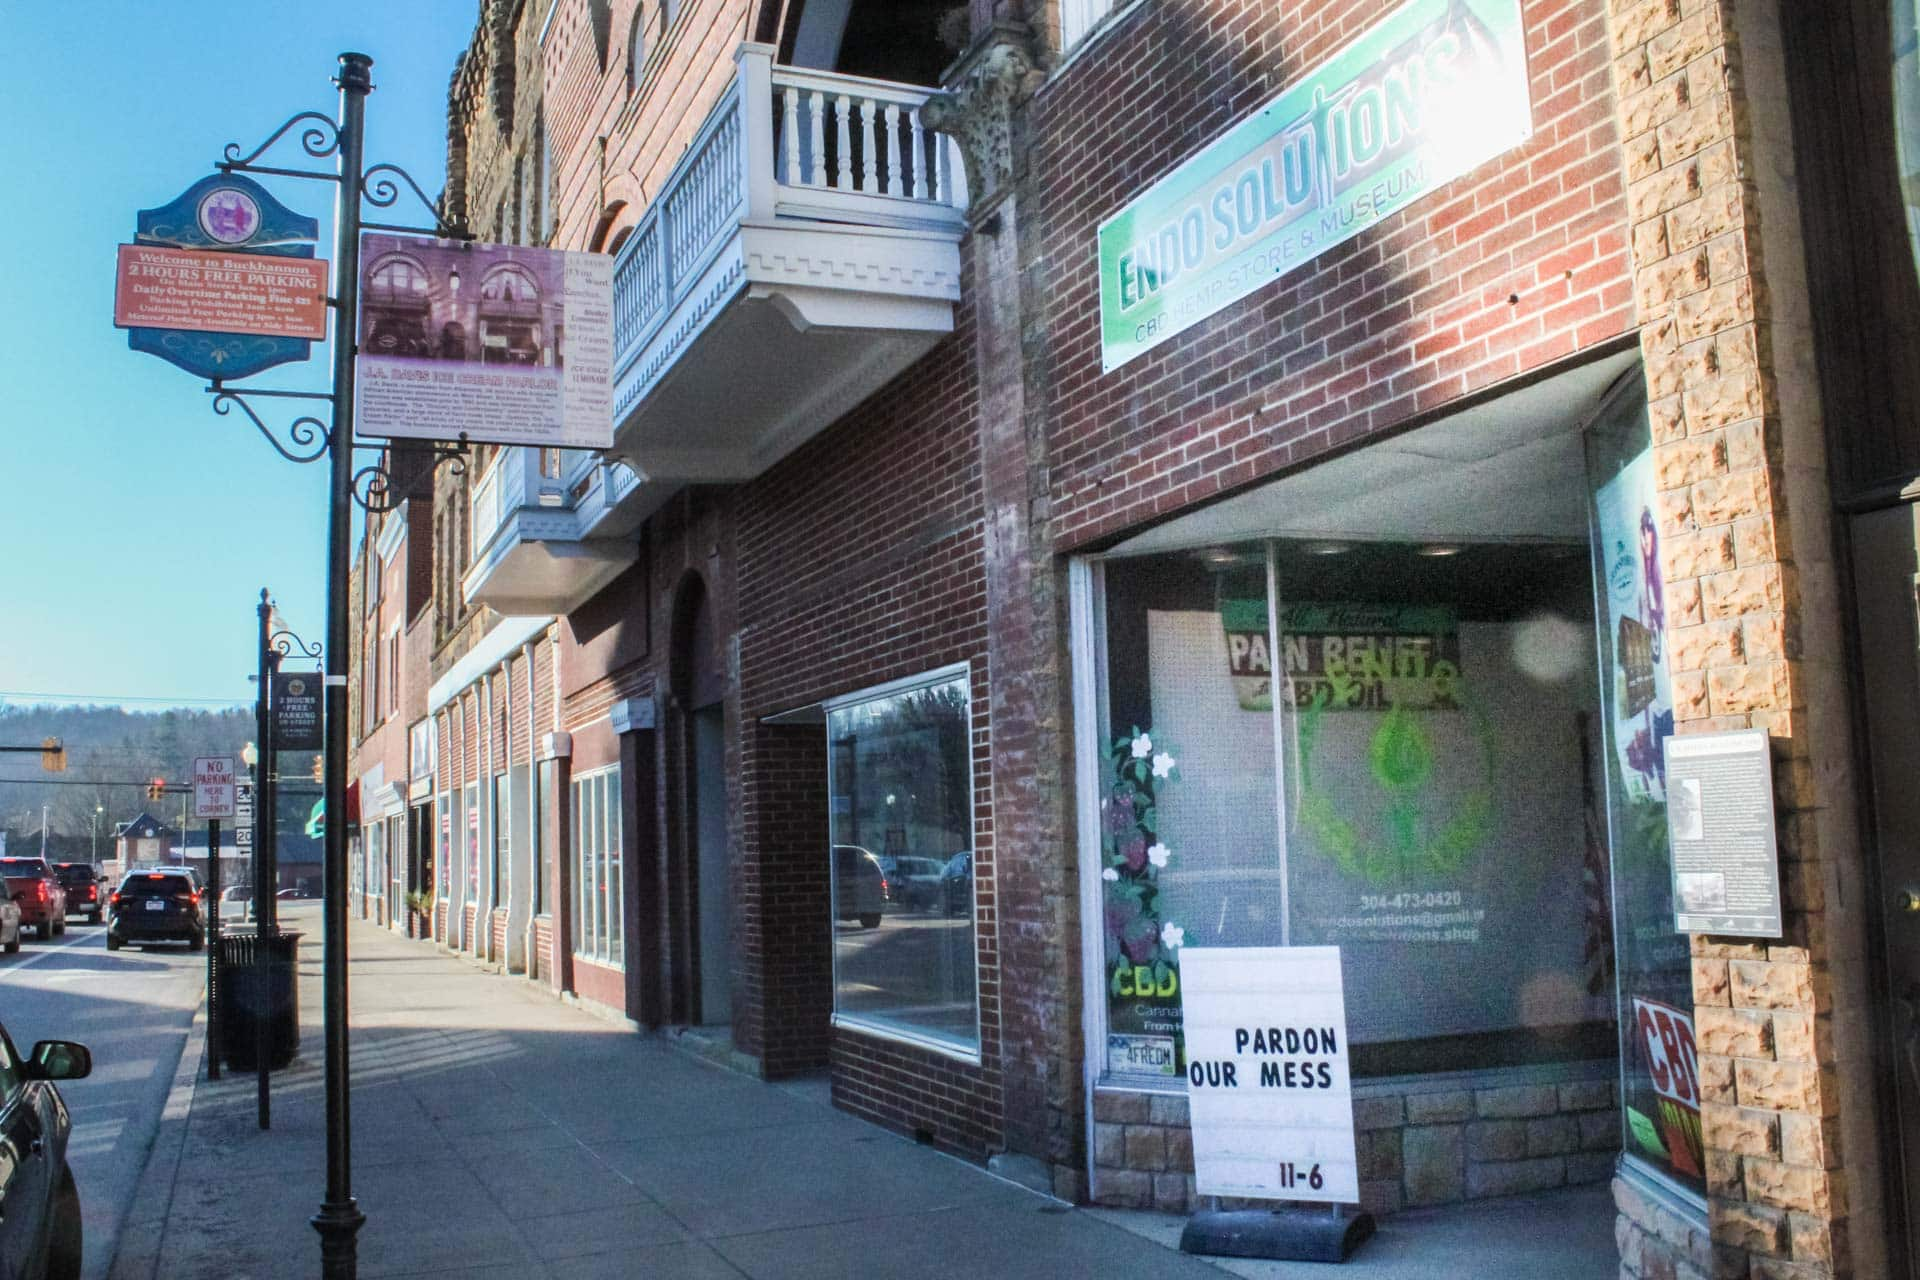 The new Endo Solutions location at 15 W. Main Street, across from the Upshur County Courthouse.